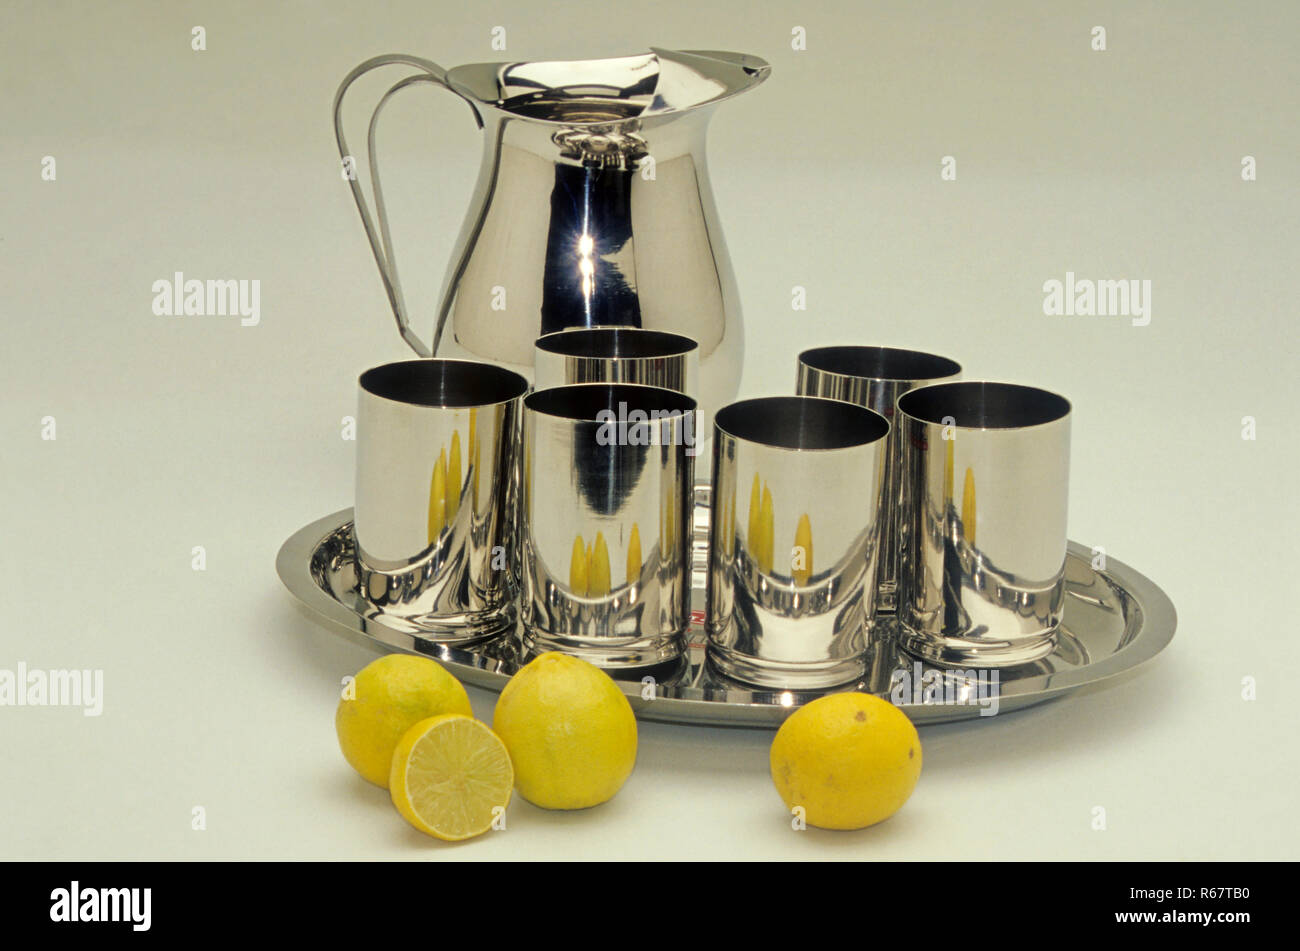 Water jug and glasses, stainless steel product - Stock Image